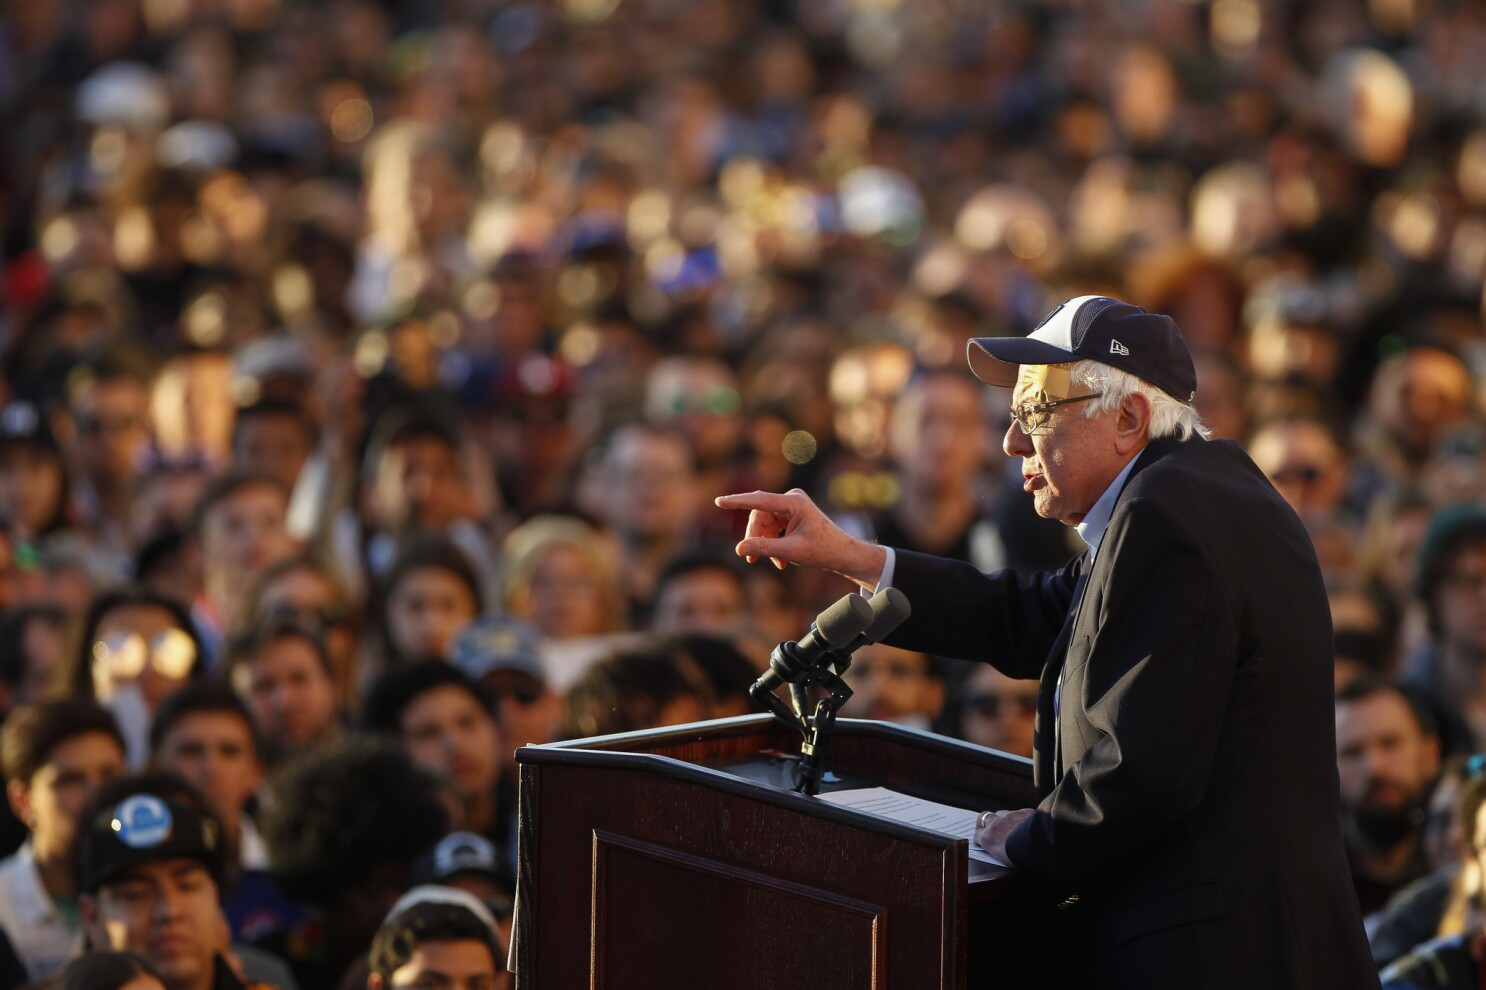 Bernie Sanders to hold immigration rally in San Ysidro next Friday